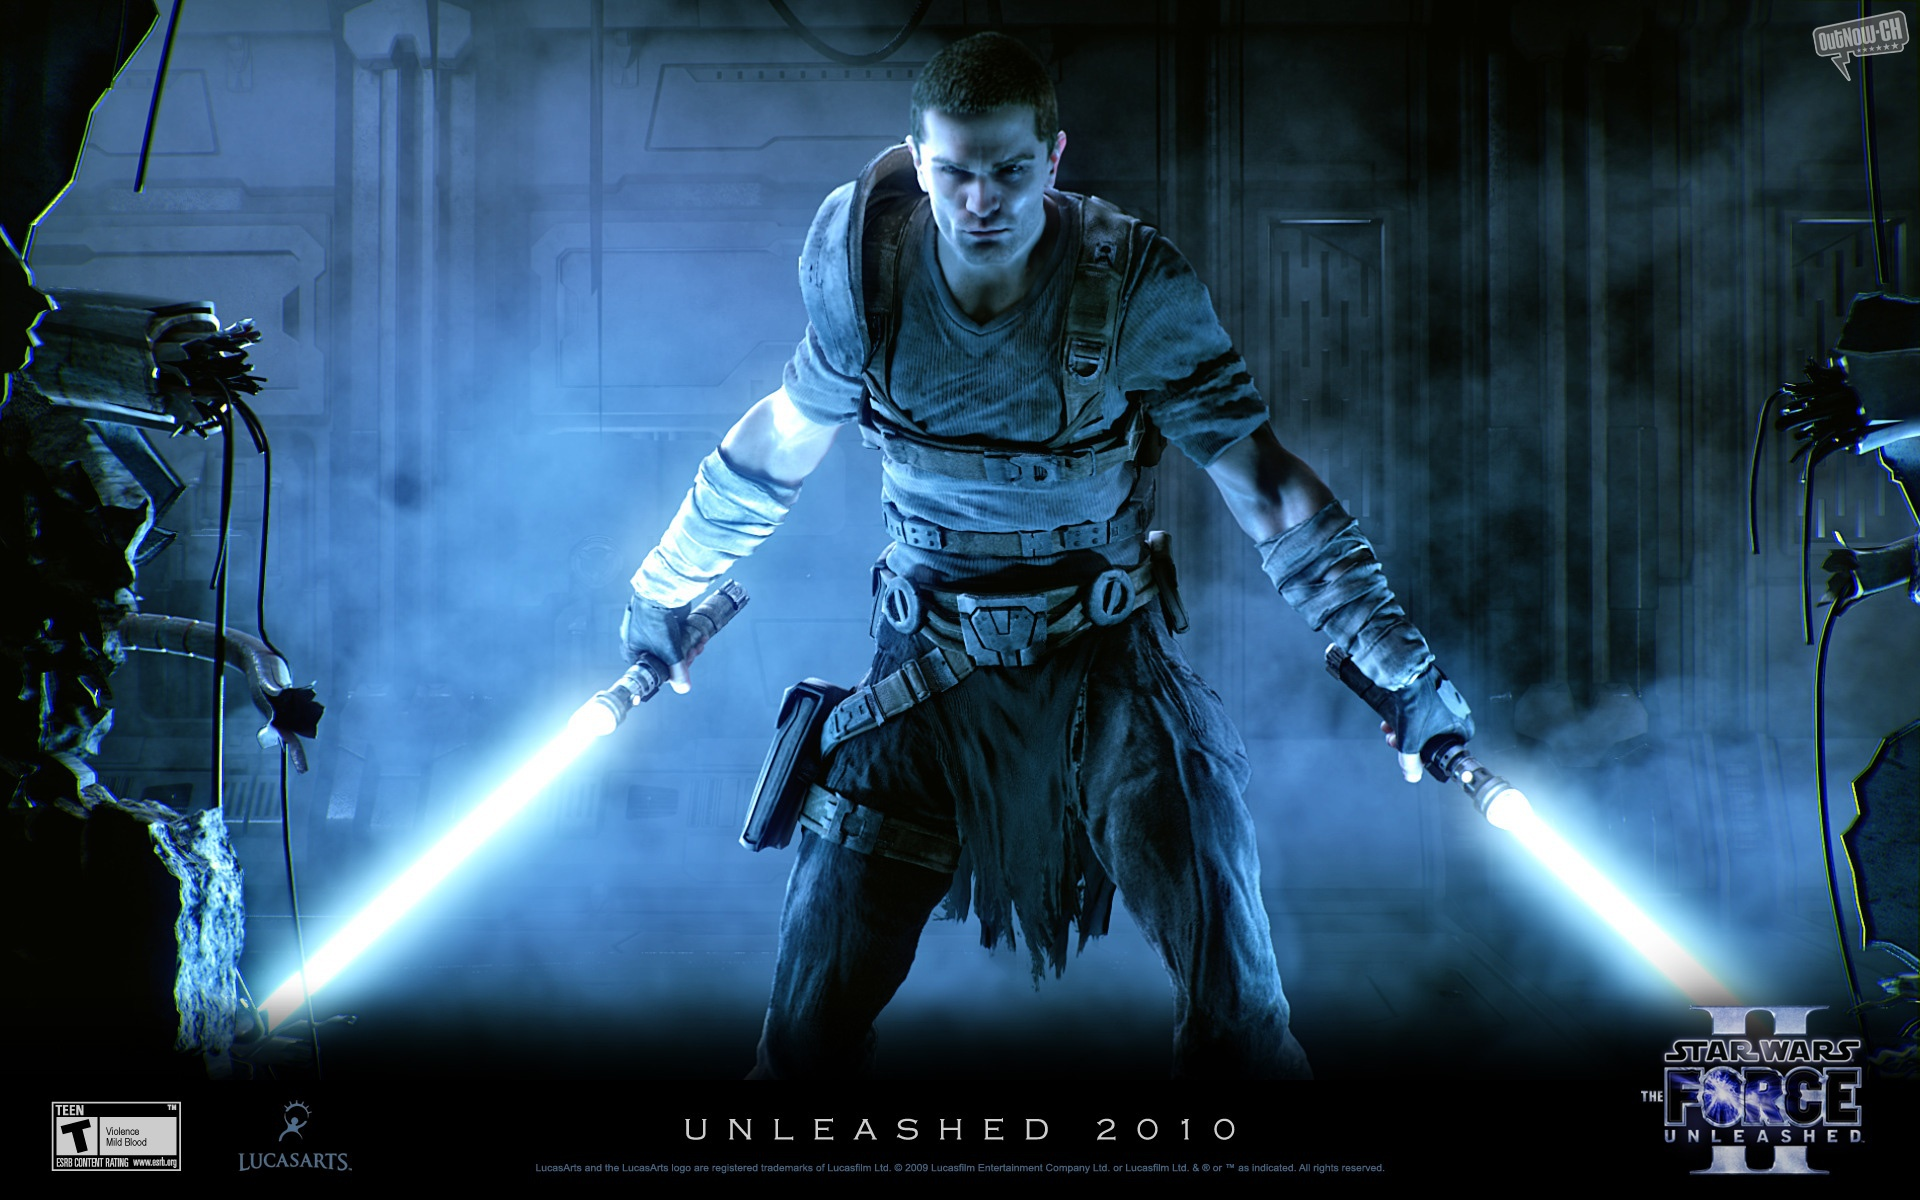 449208-star-wars-the-force-unleashed